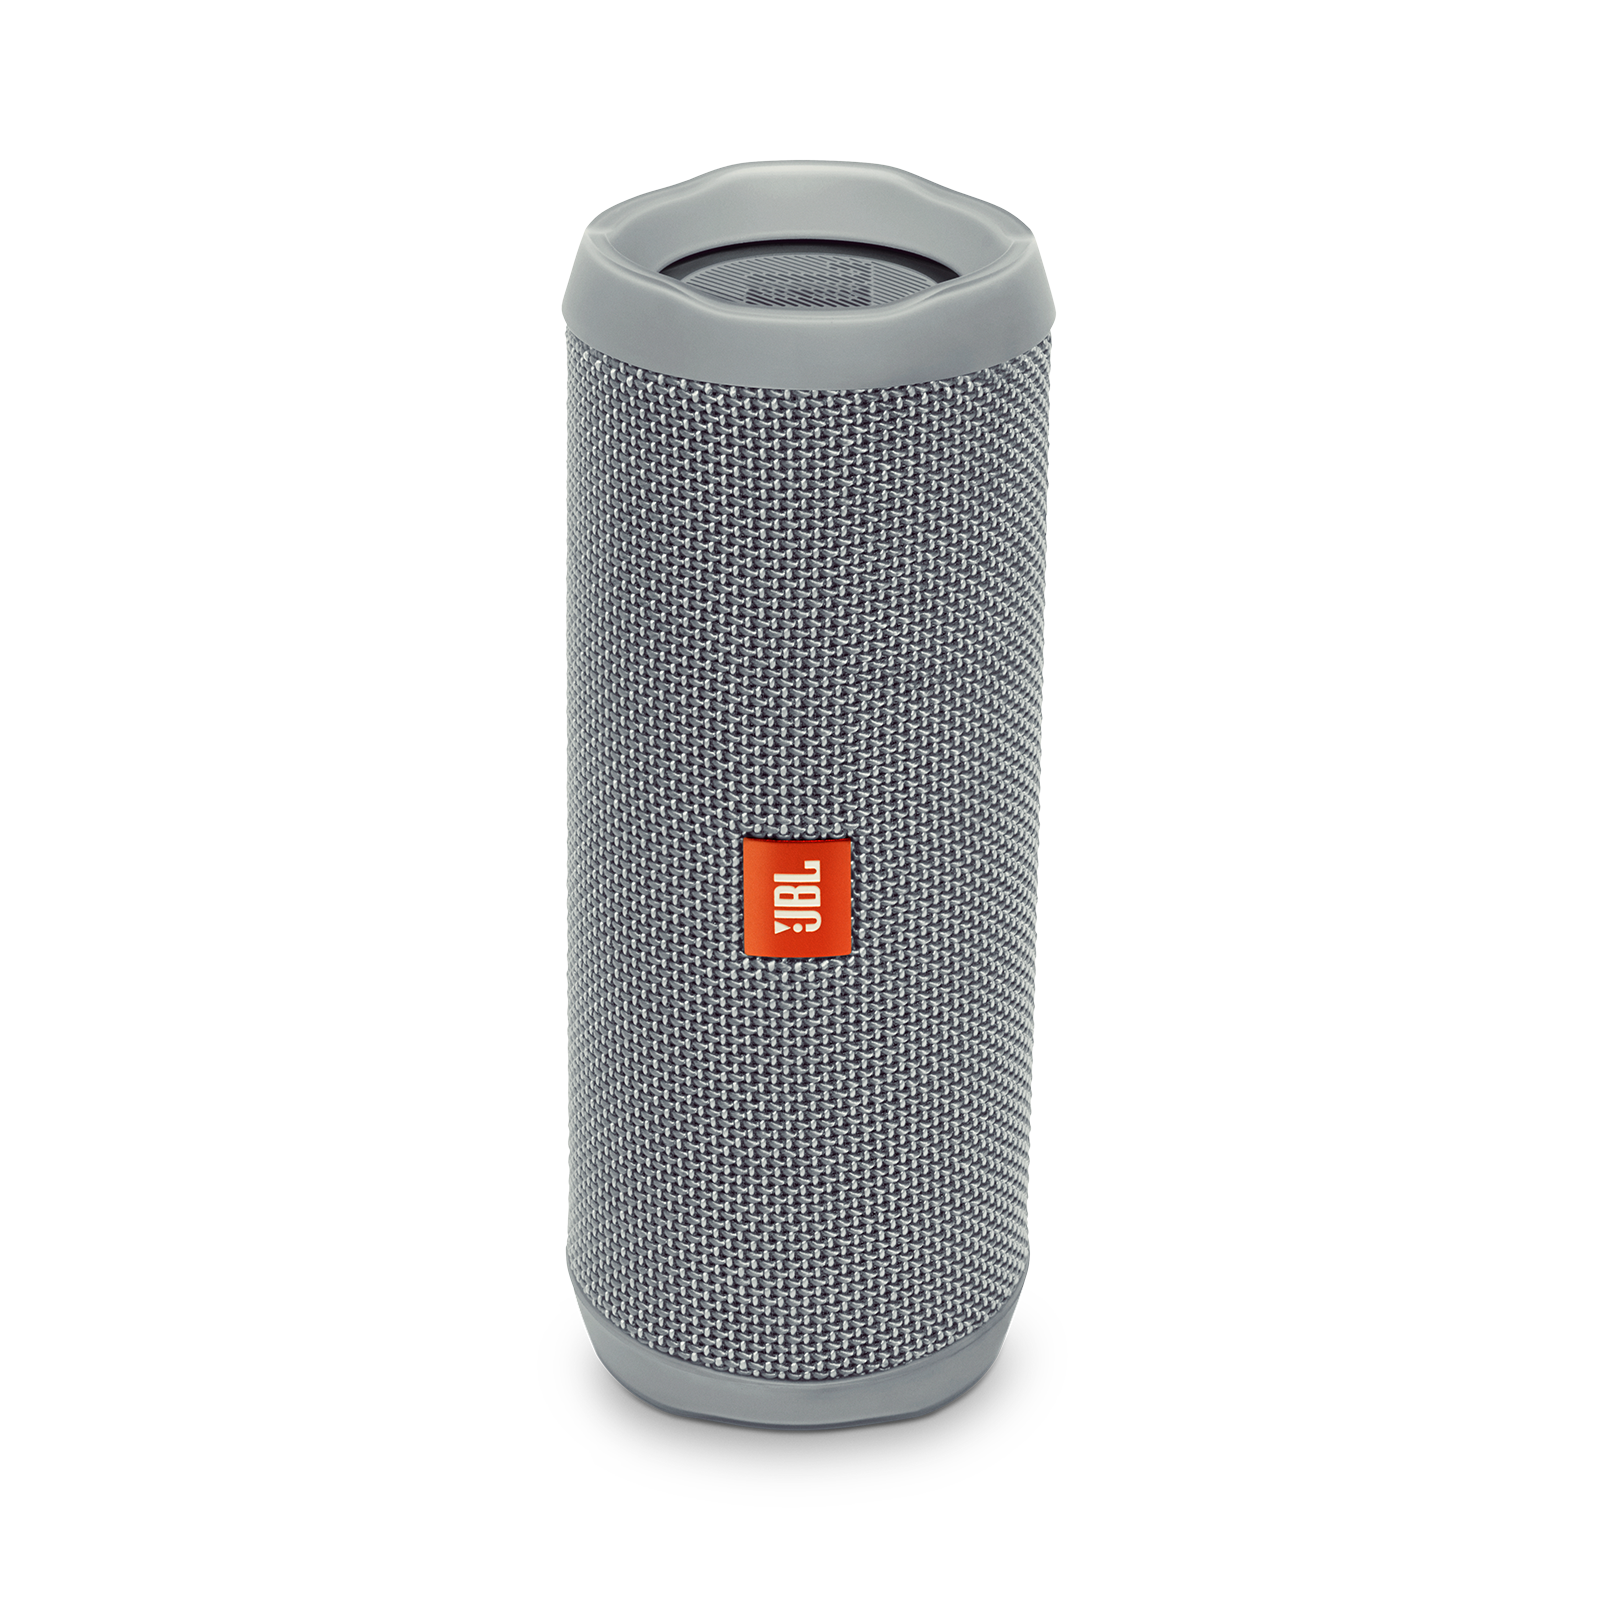 JBL Flip 8  Portable Bluetooth Speakers  JBL US